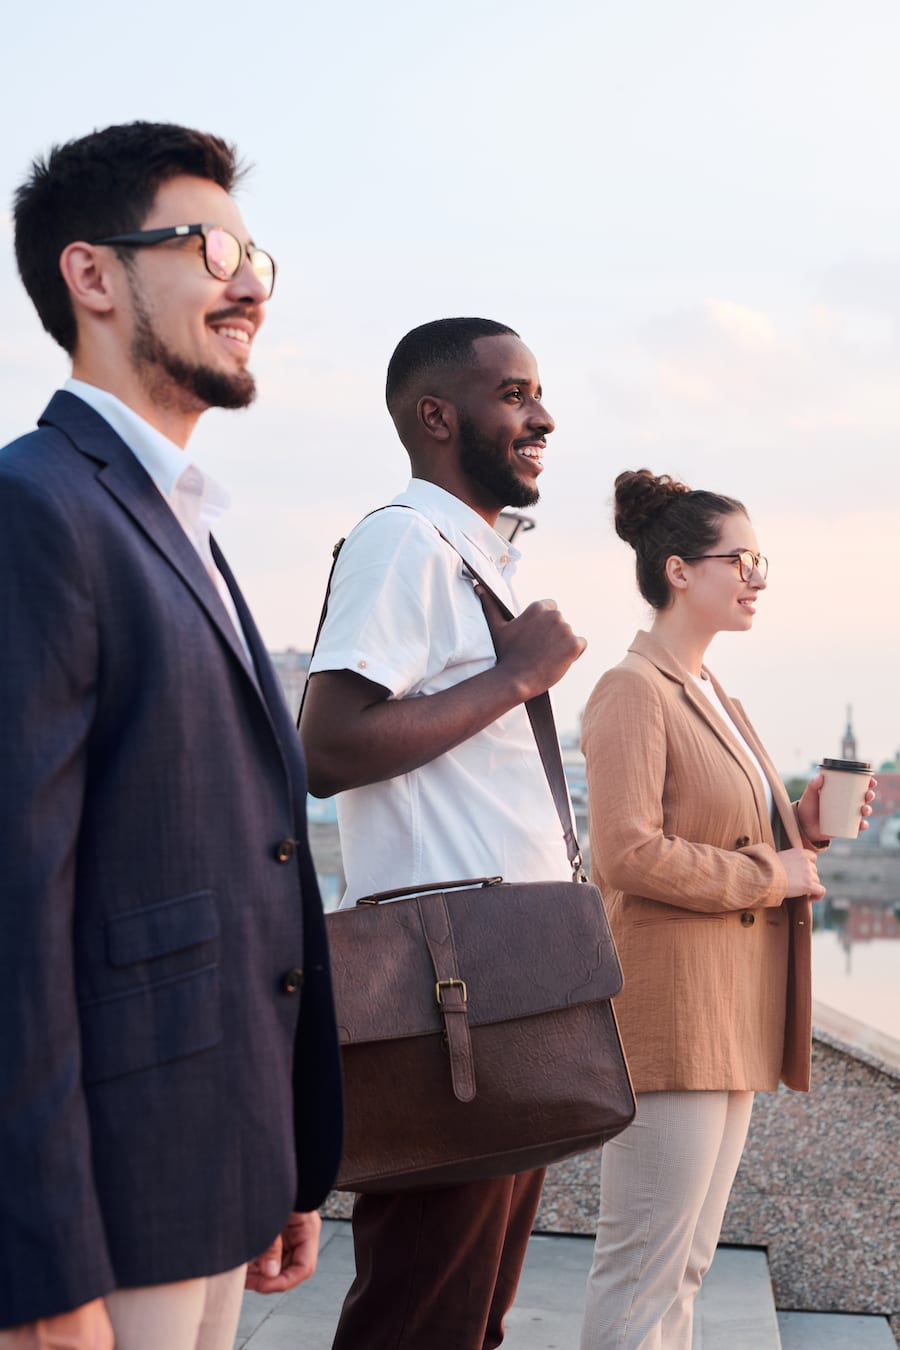 The Future of Selling Ambitious Employees